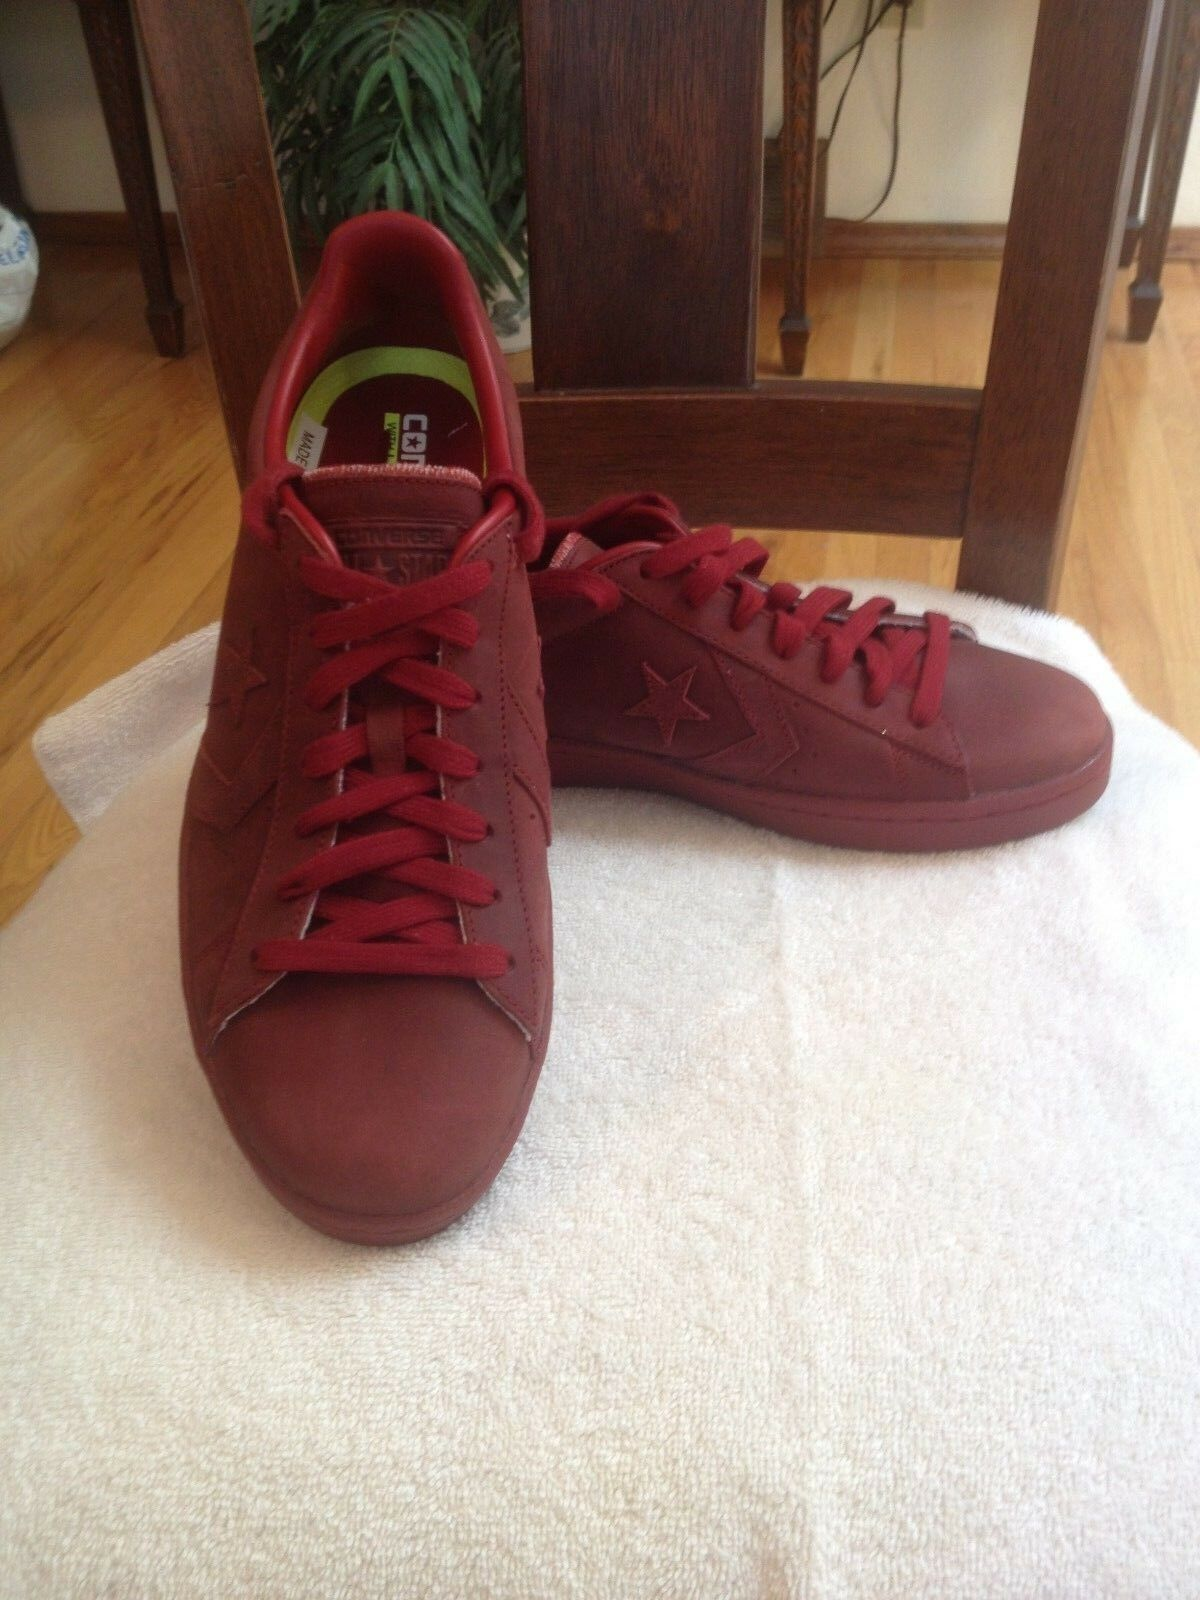 Converse Pro Leather Mono Low Top Sneakers Size 9.5 Brick Alley